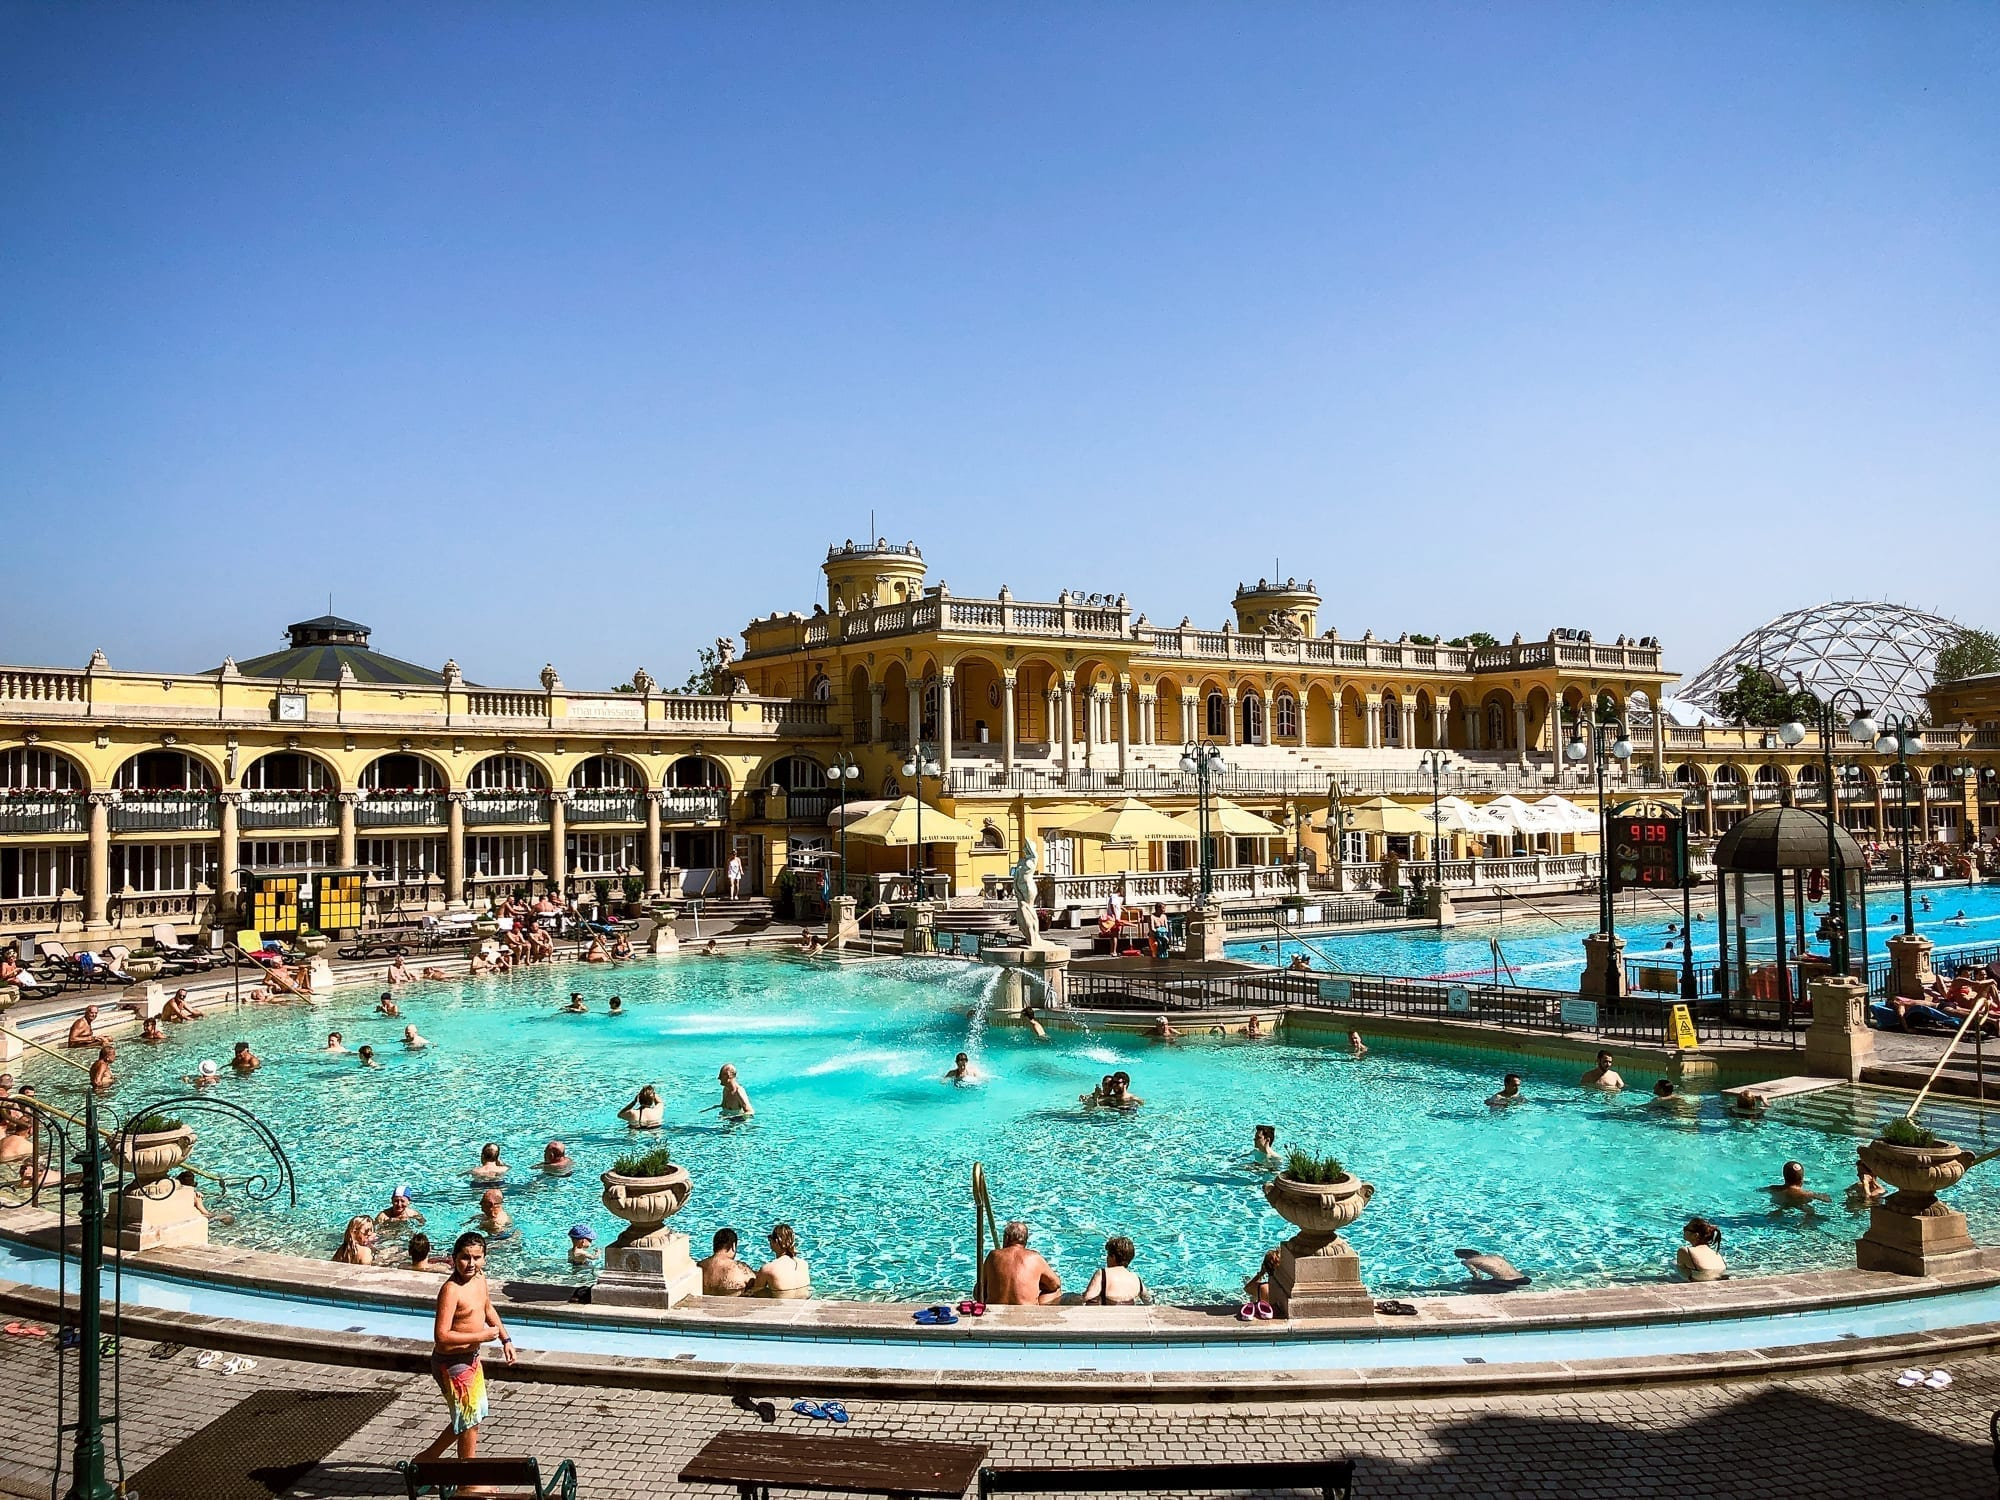 Szechenyi Bath for physical access